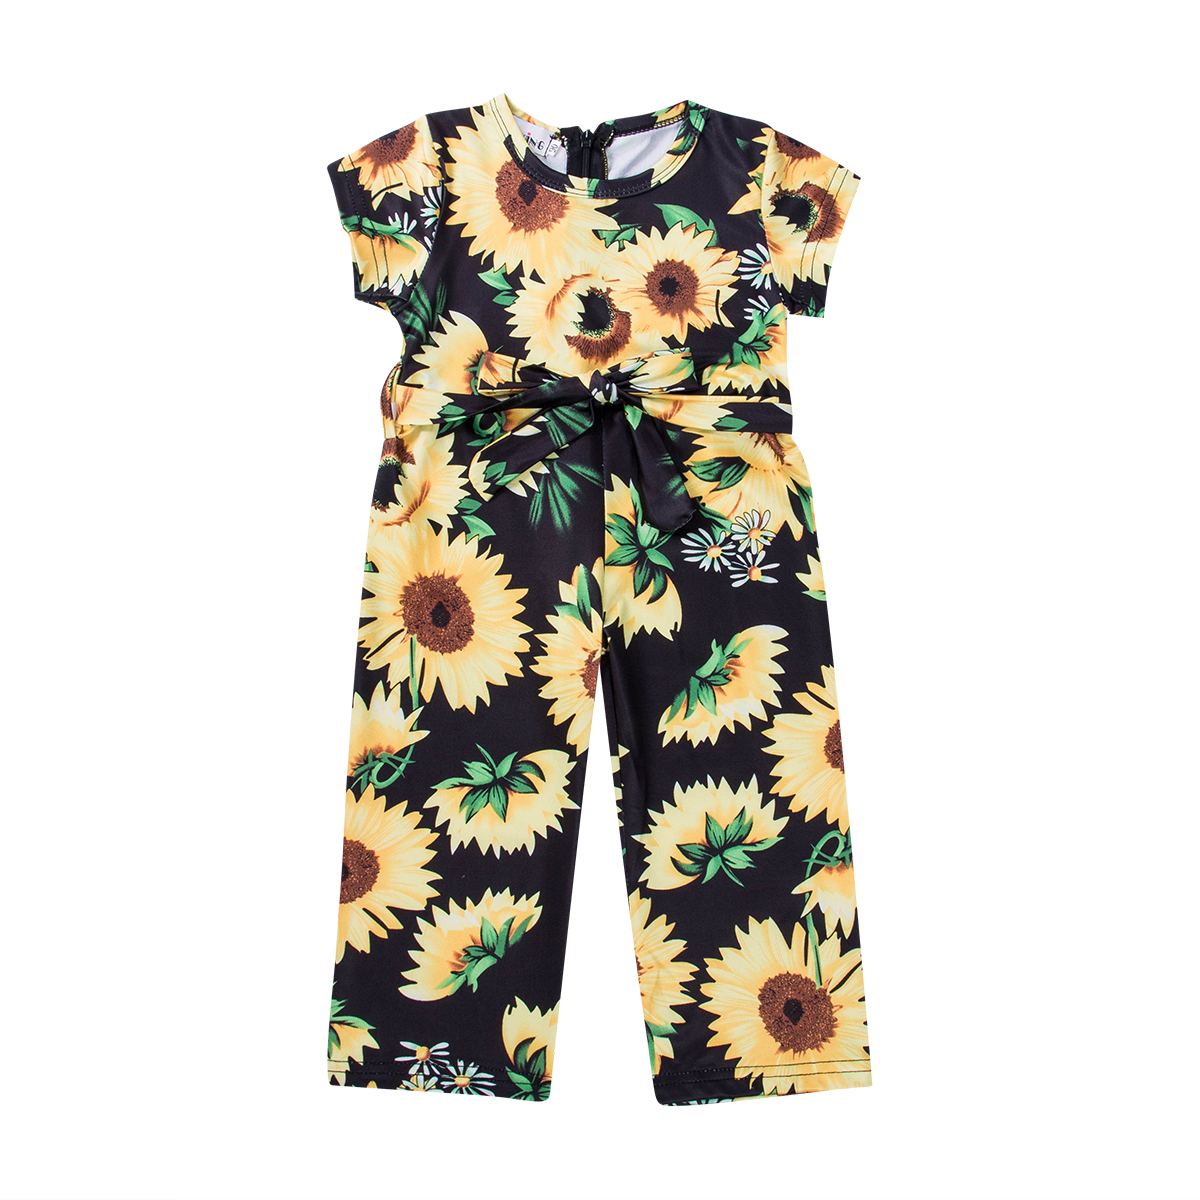 2019 Summer Toddler Kids Baby Girl Sunflower   Romper   Short Sleeve Belt Bow Princess Girls Jumpsuit Playsuit Sunsuit Clothes